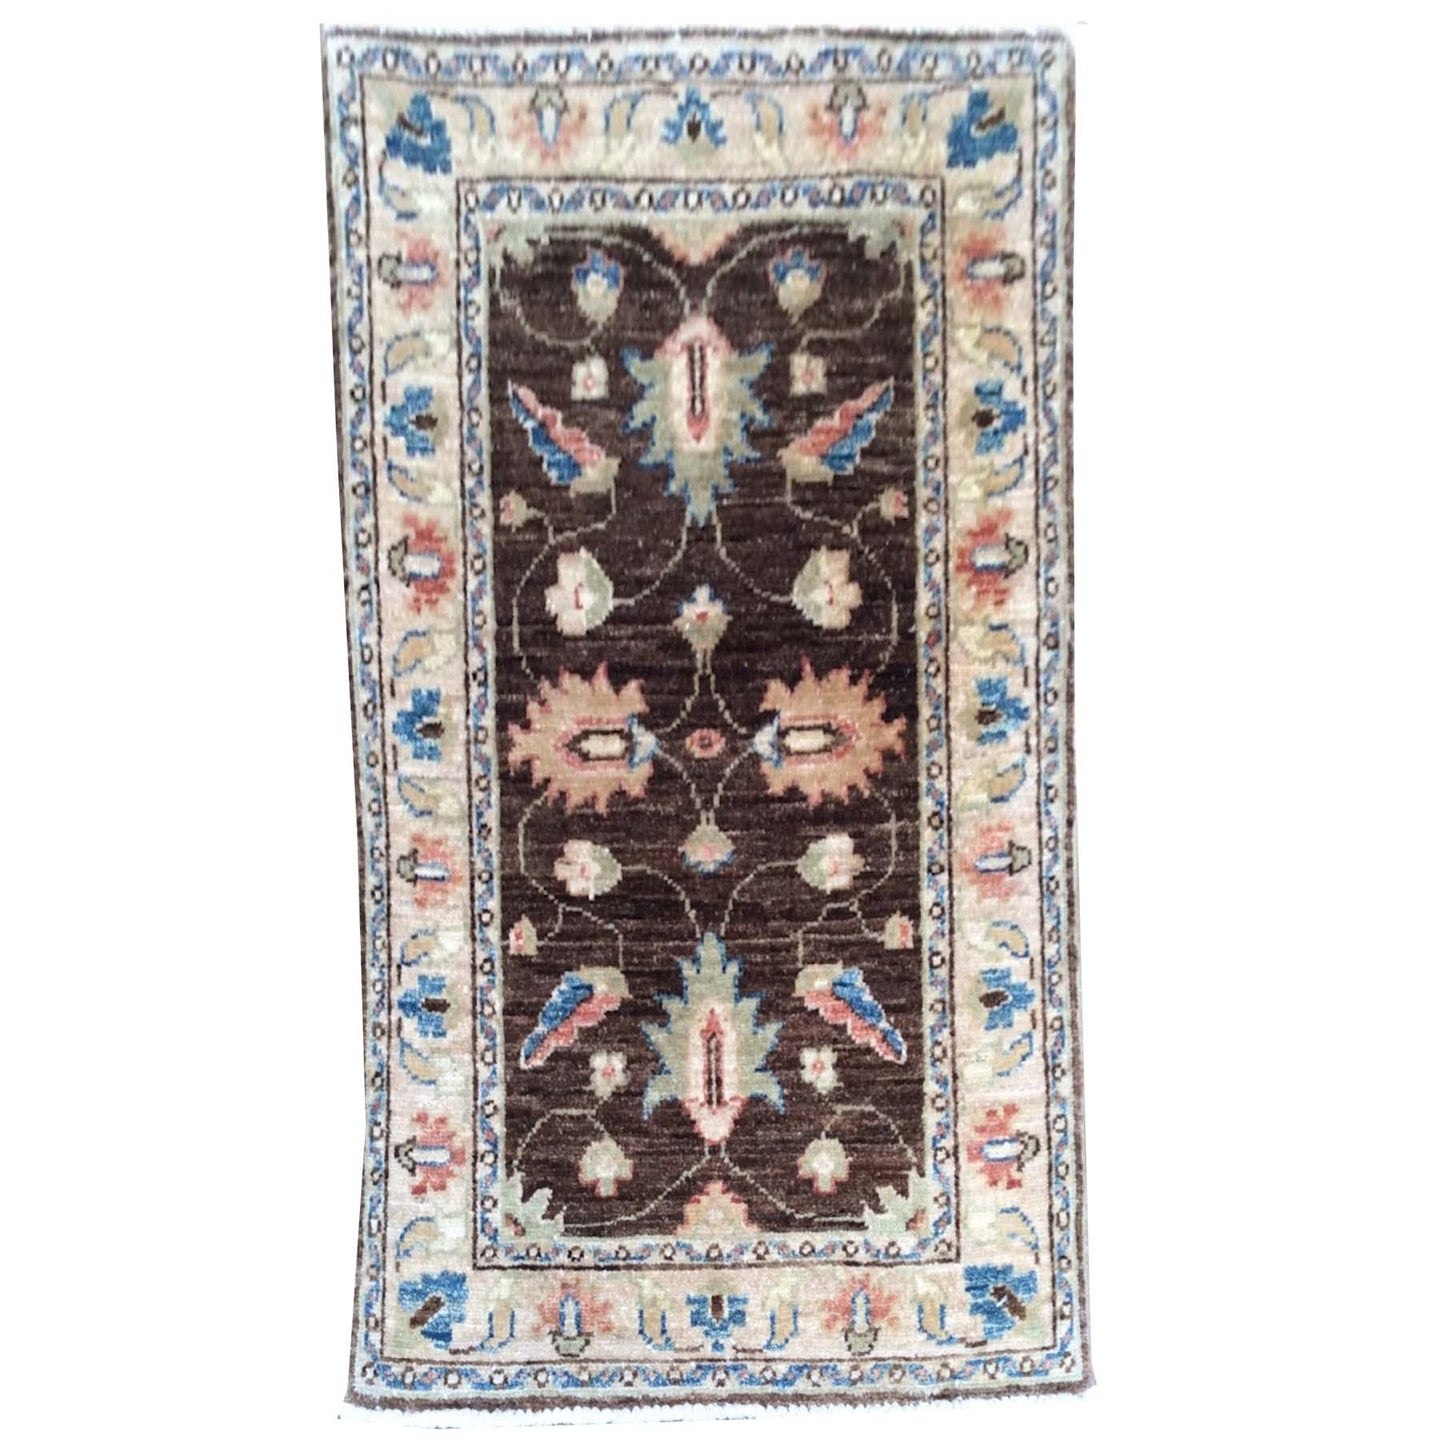 Hand-Knotted Floral Design Peshawar Handmade Wool Rug (Size 1.11 X 3.0) Brrsf-1677